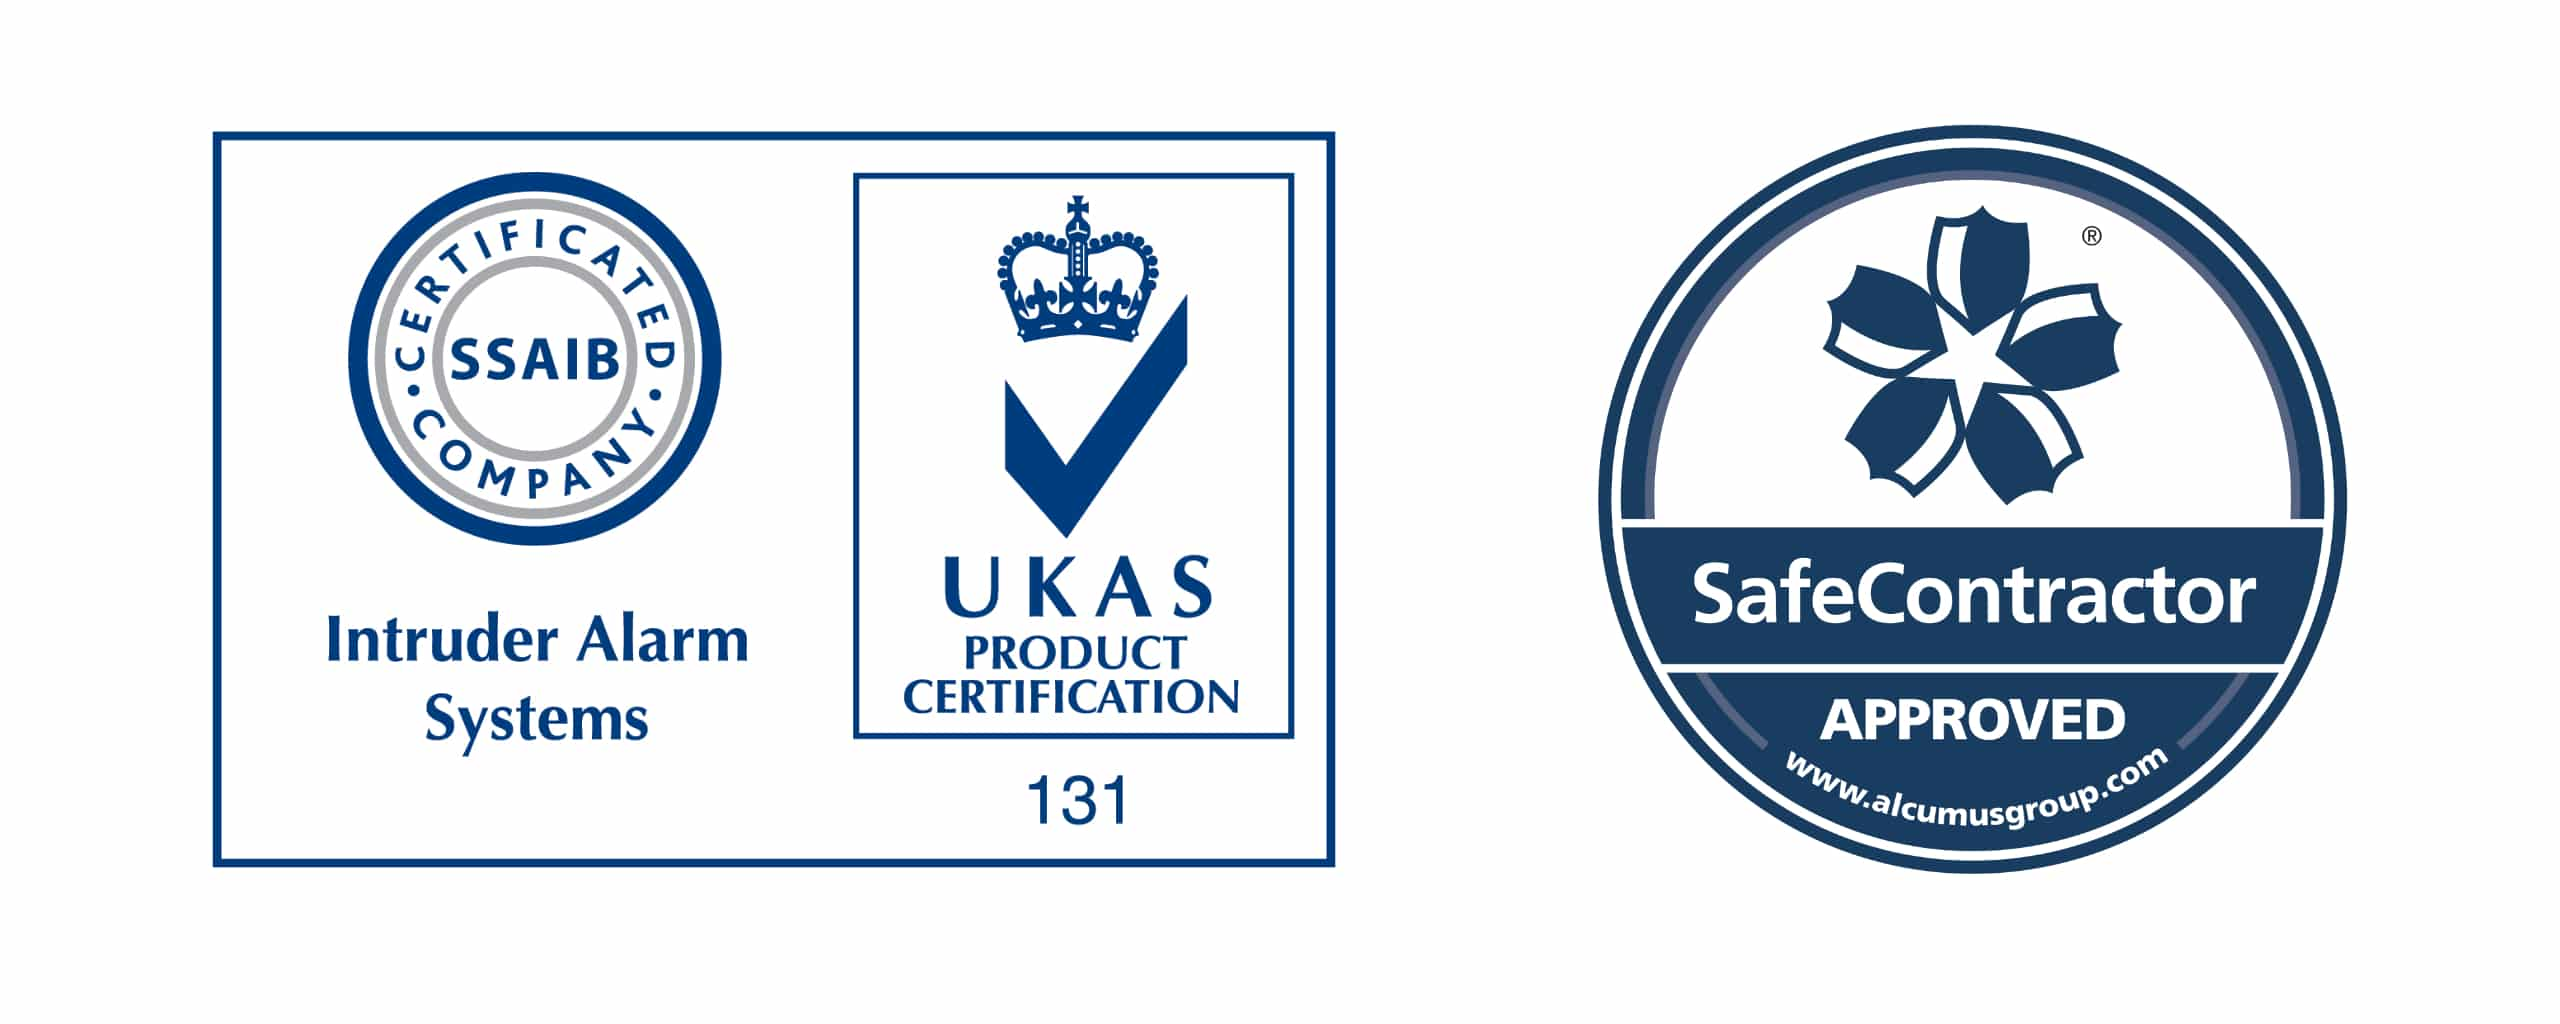 Seen Security - Safe Contractor Accreditation & UKAS Intruder Alarms Certified